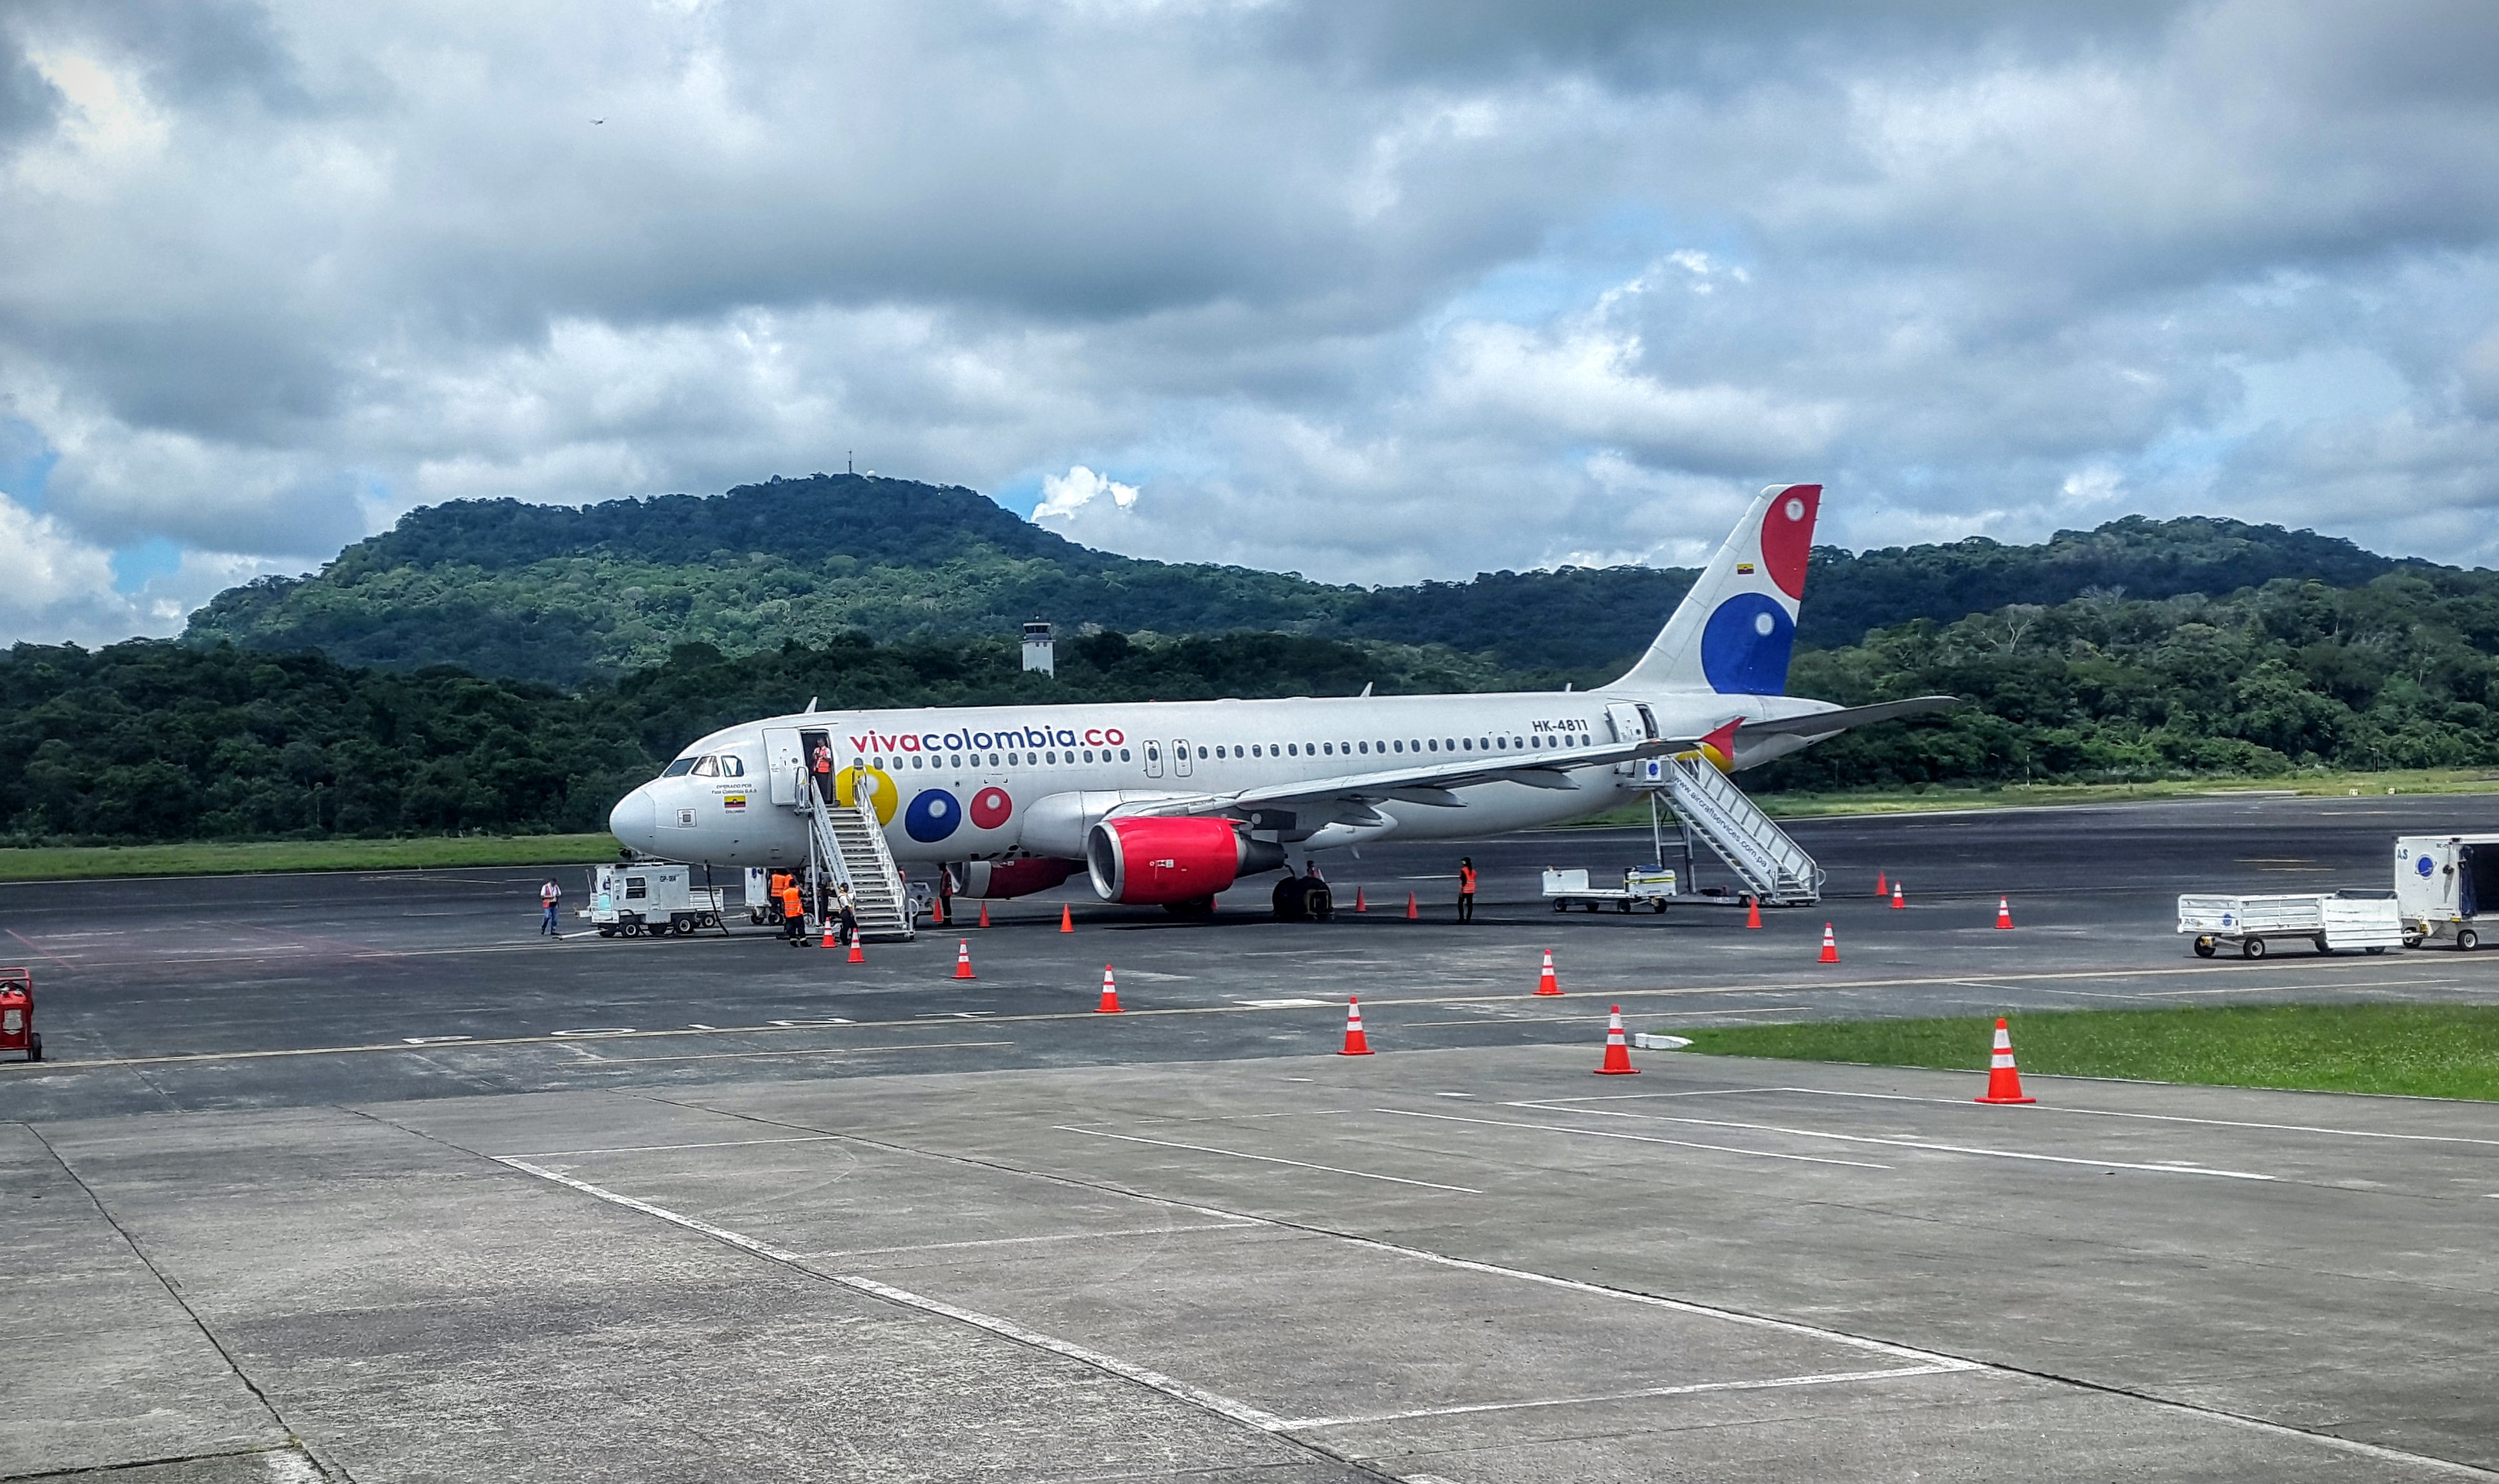 VivaColombia Airline Airbus A320-200 sits on the tarmac at Panama Pacifico International Airport in Panama.